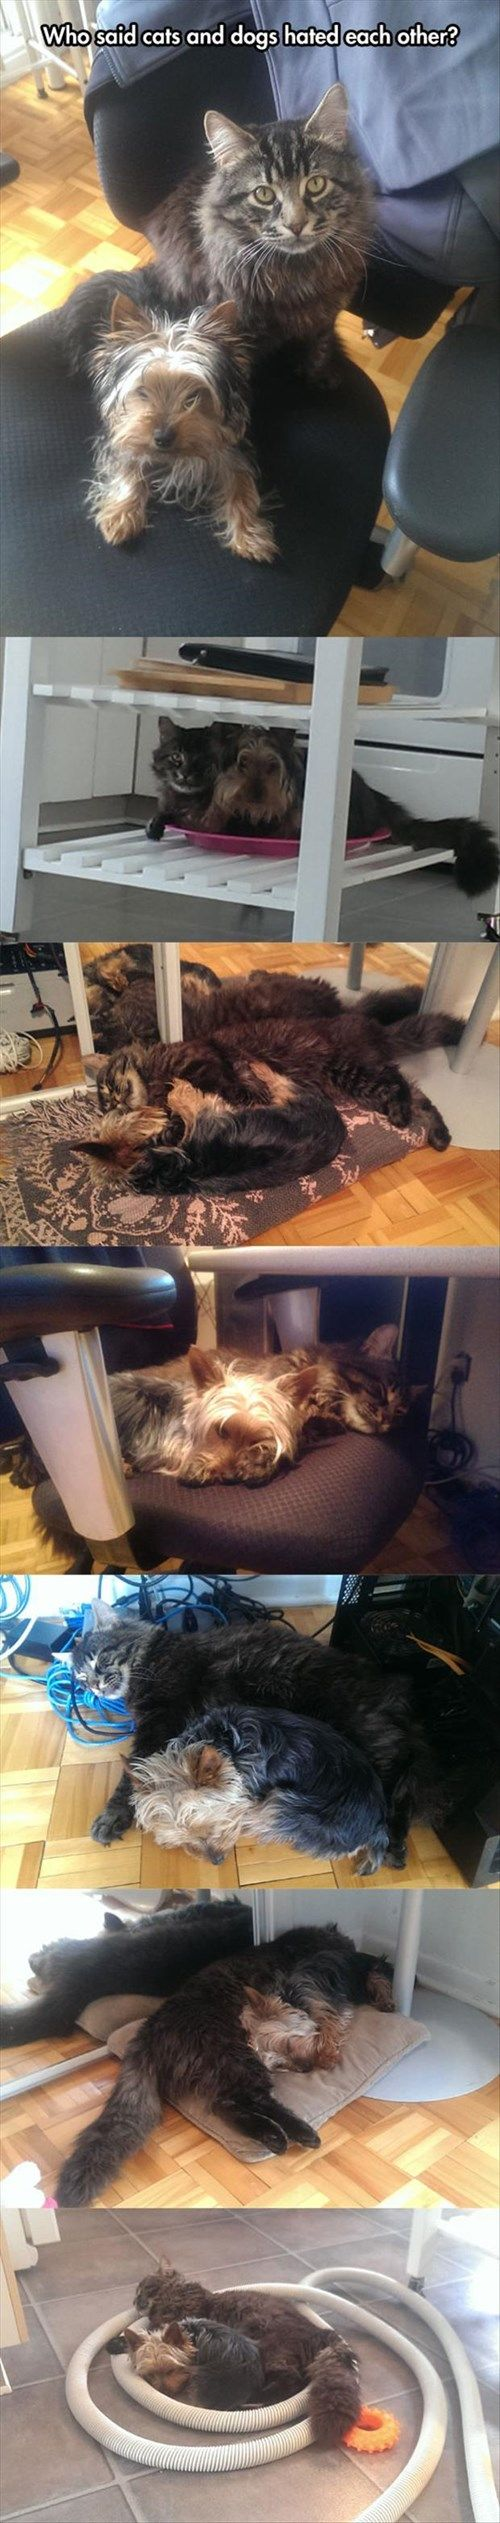 yorkie and cats 10